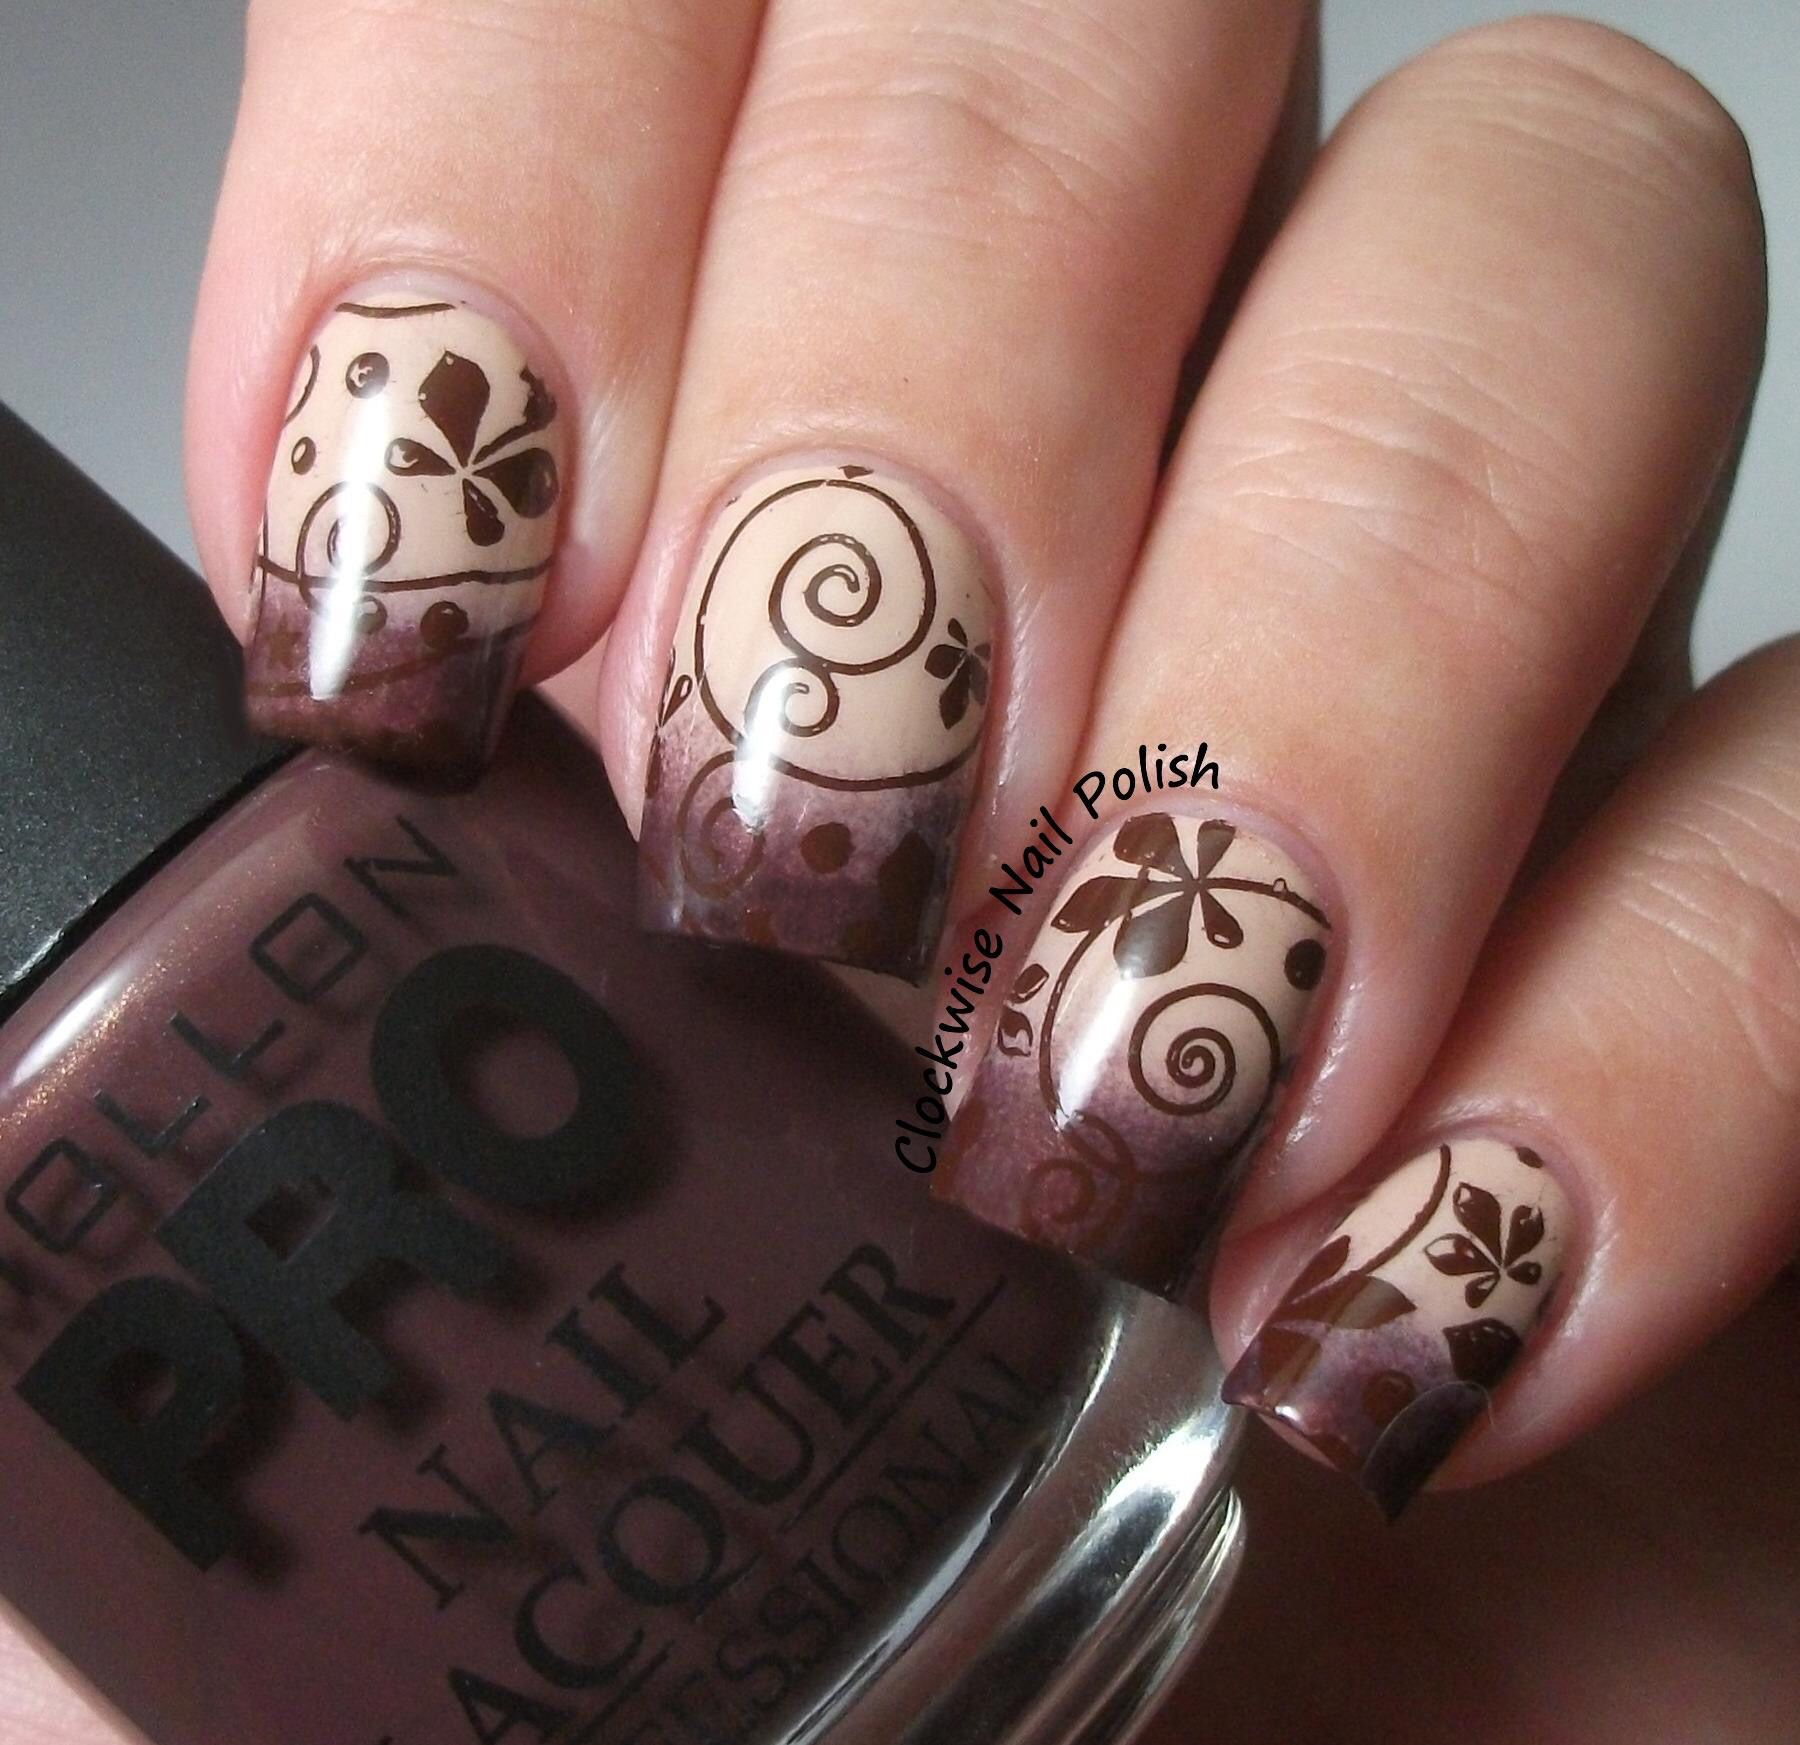 Brown and beige | Nails | Pinterest | Nageldesign und Fingernägel